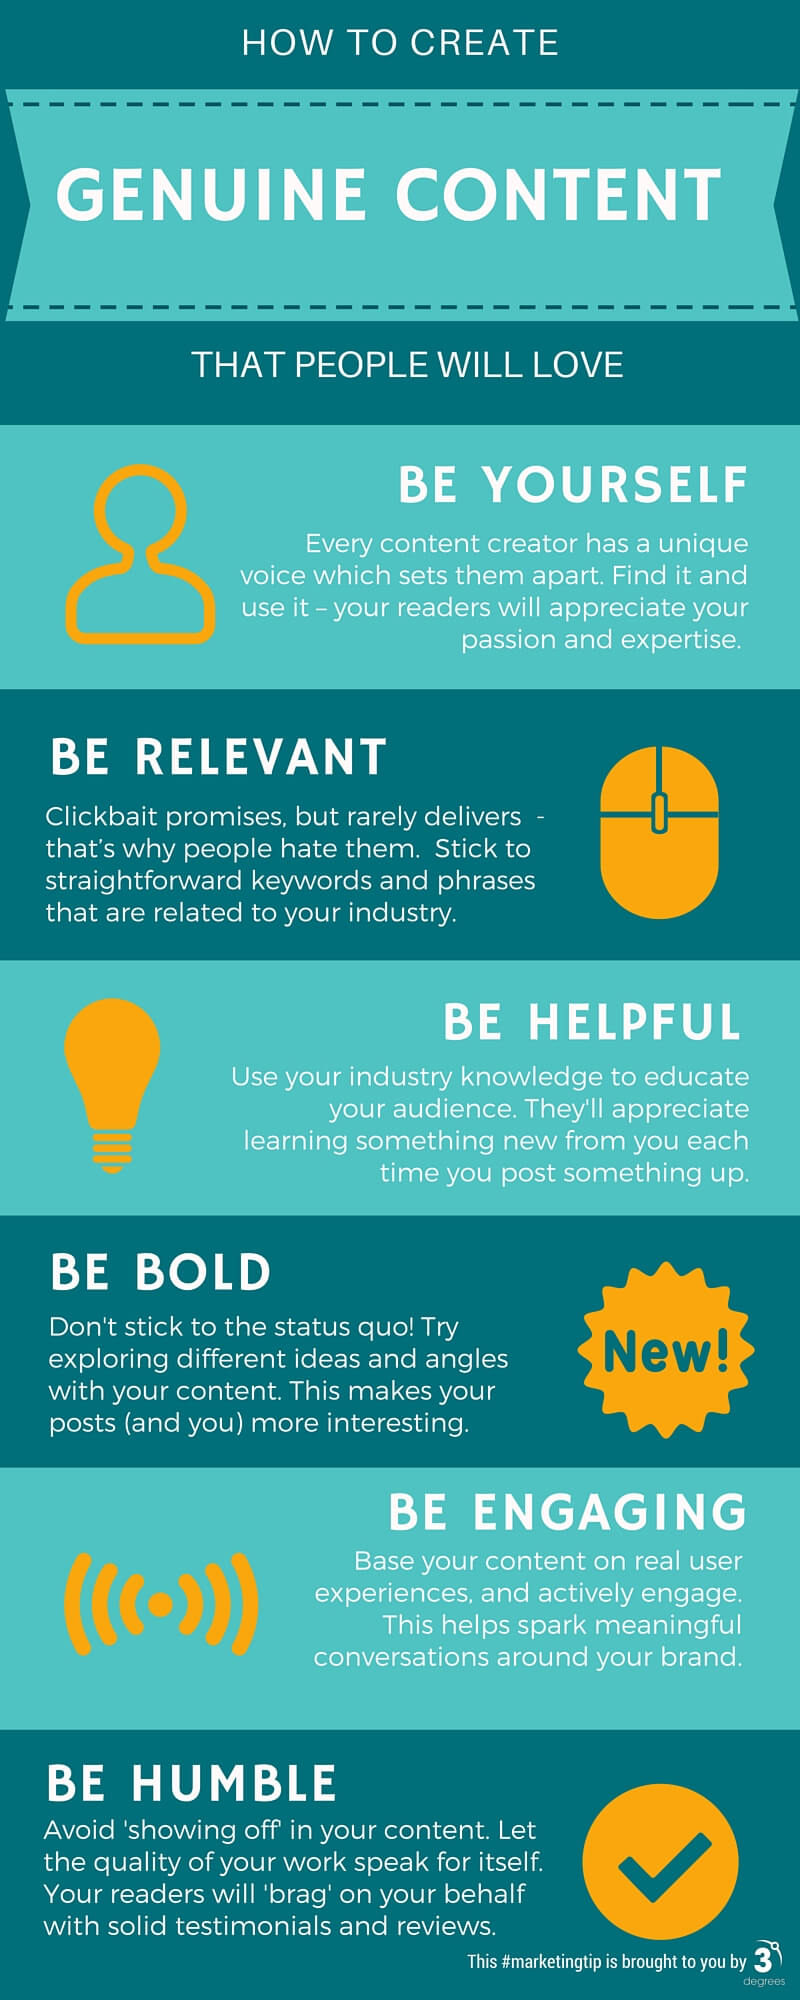 How to Create Genuine Content (Infographic)